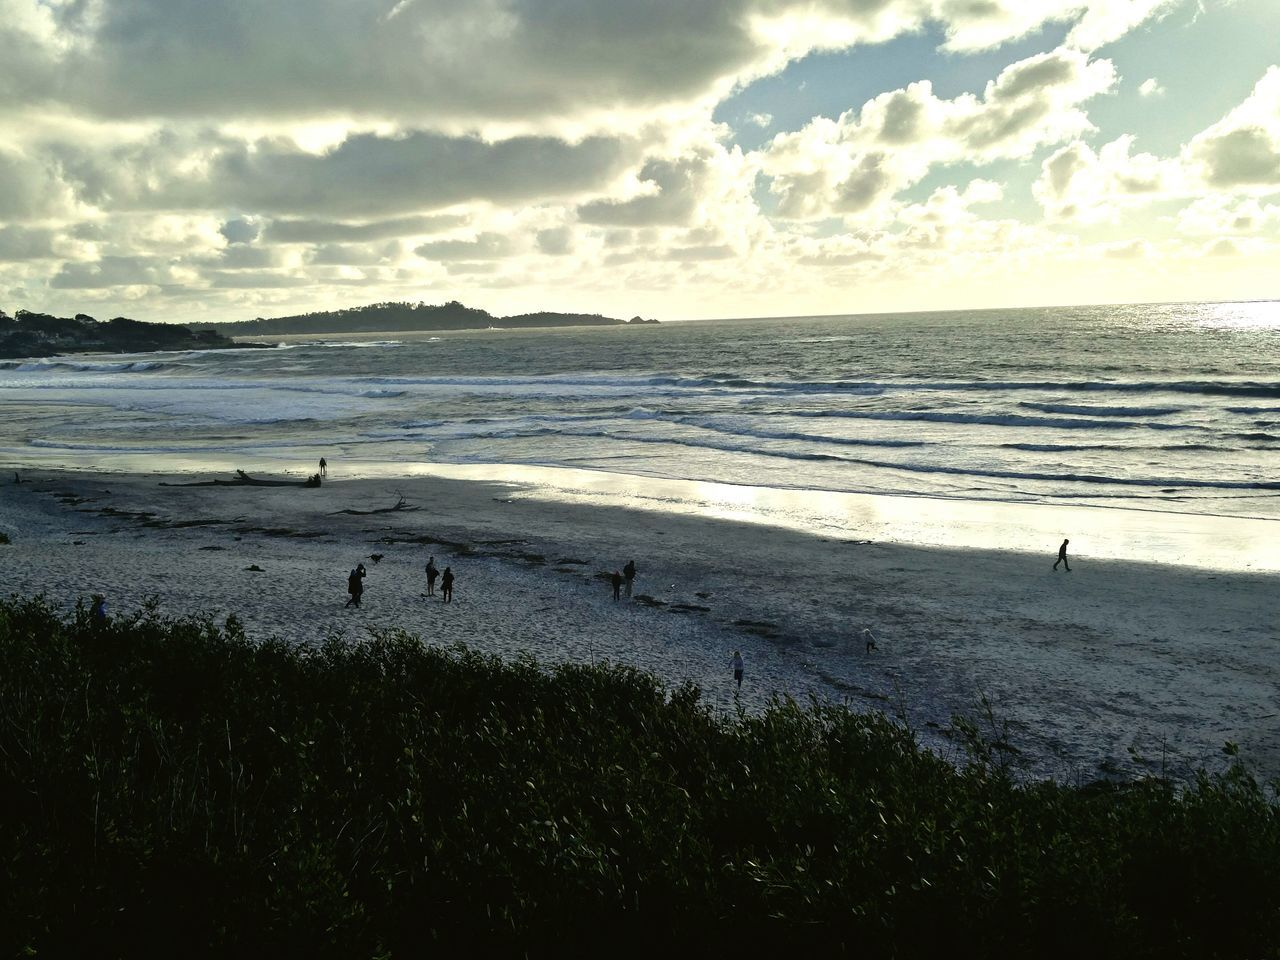 Carmel beach. Where I found serenity. Soothing my burning soul